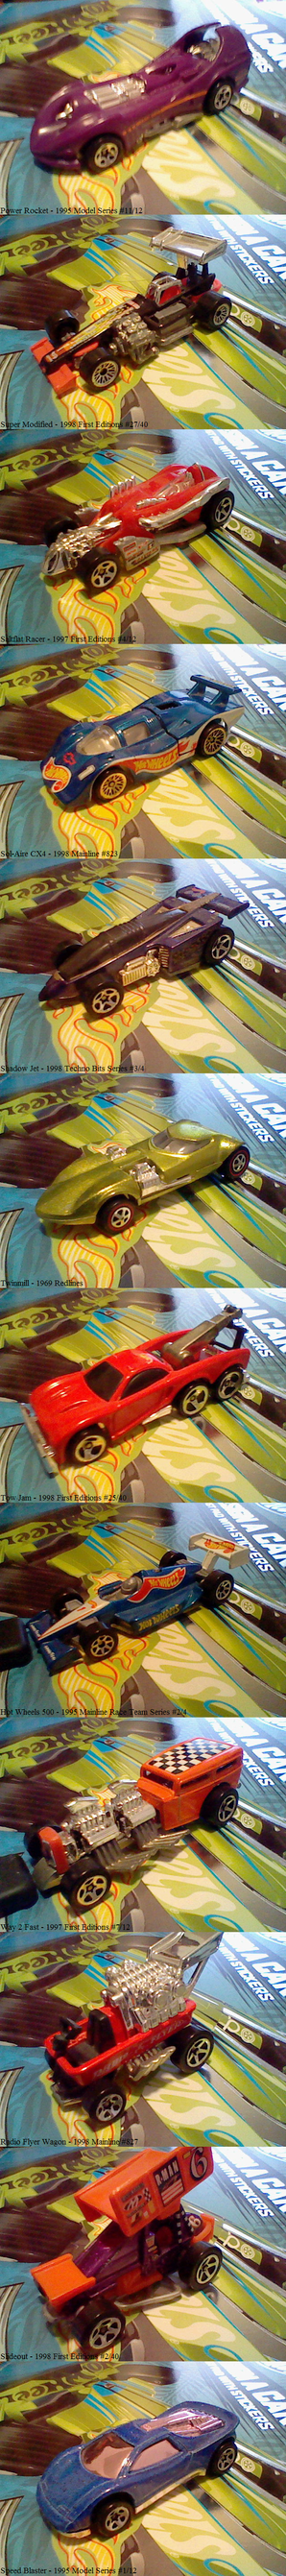 Stunt Track Driver - Die-Cast Collection by Sfrhk678